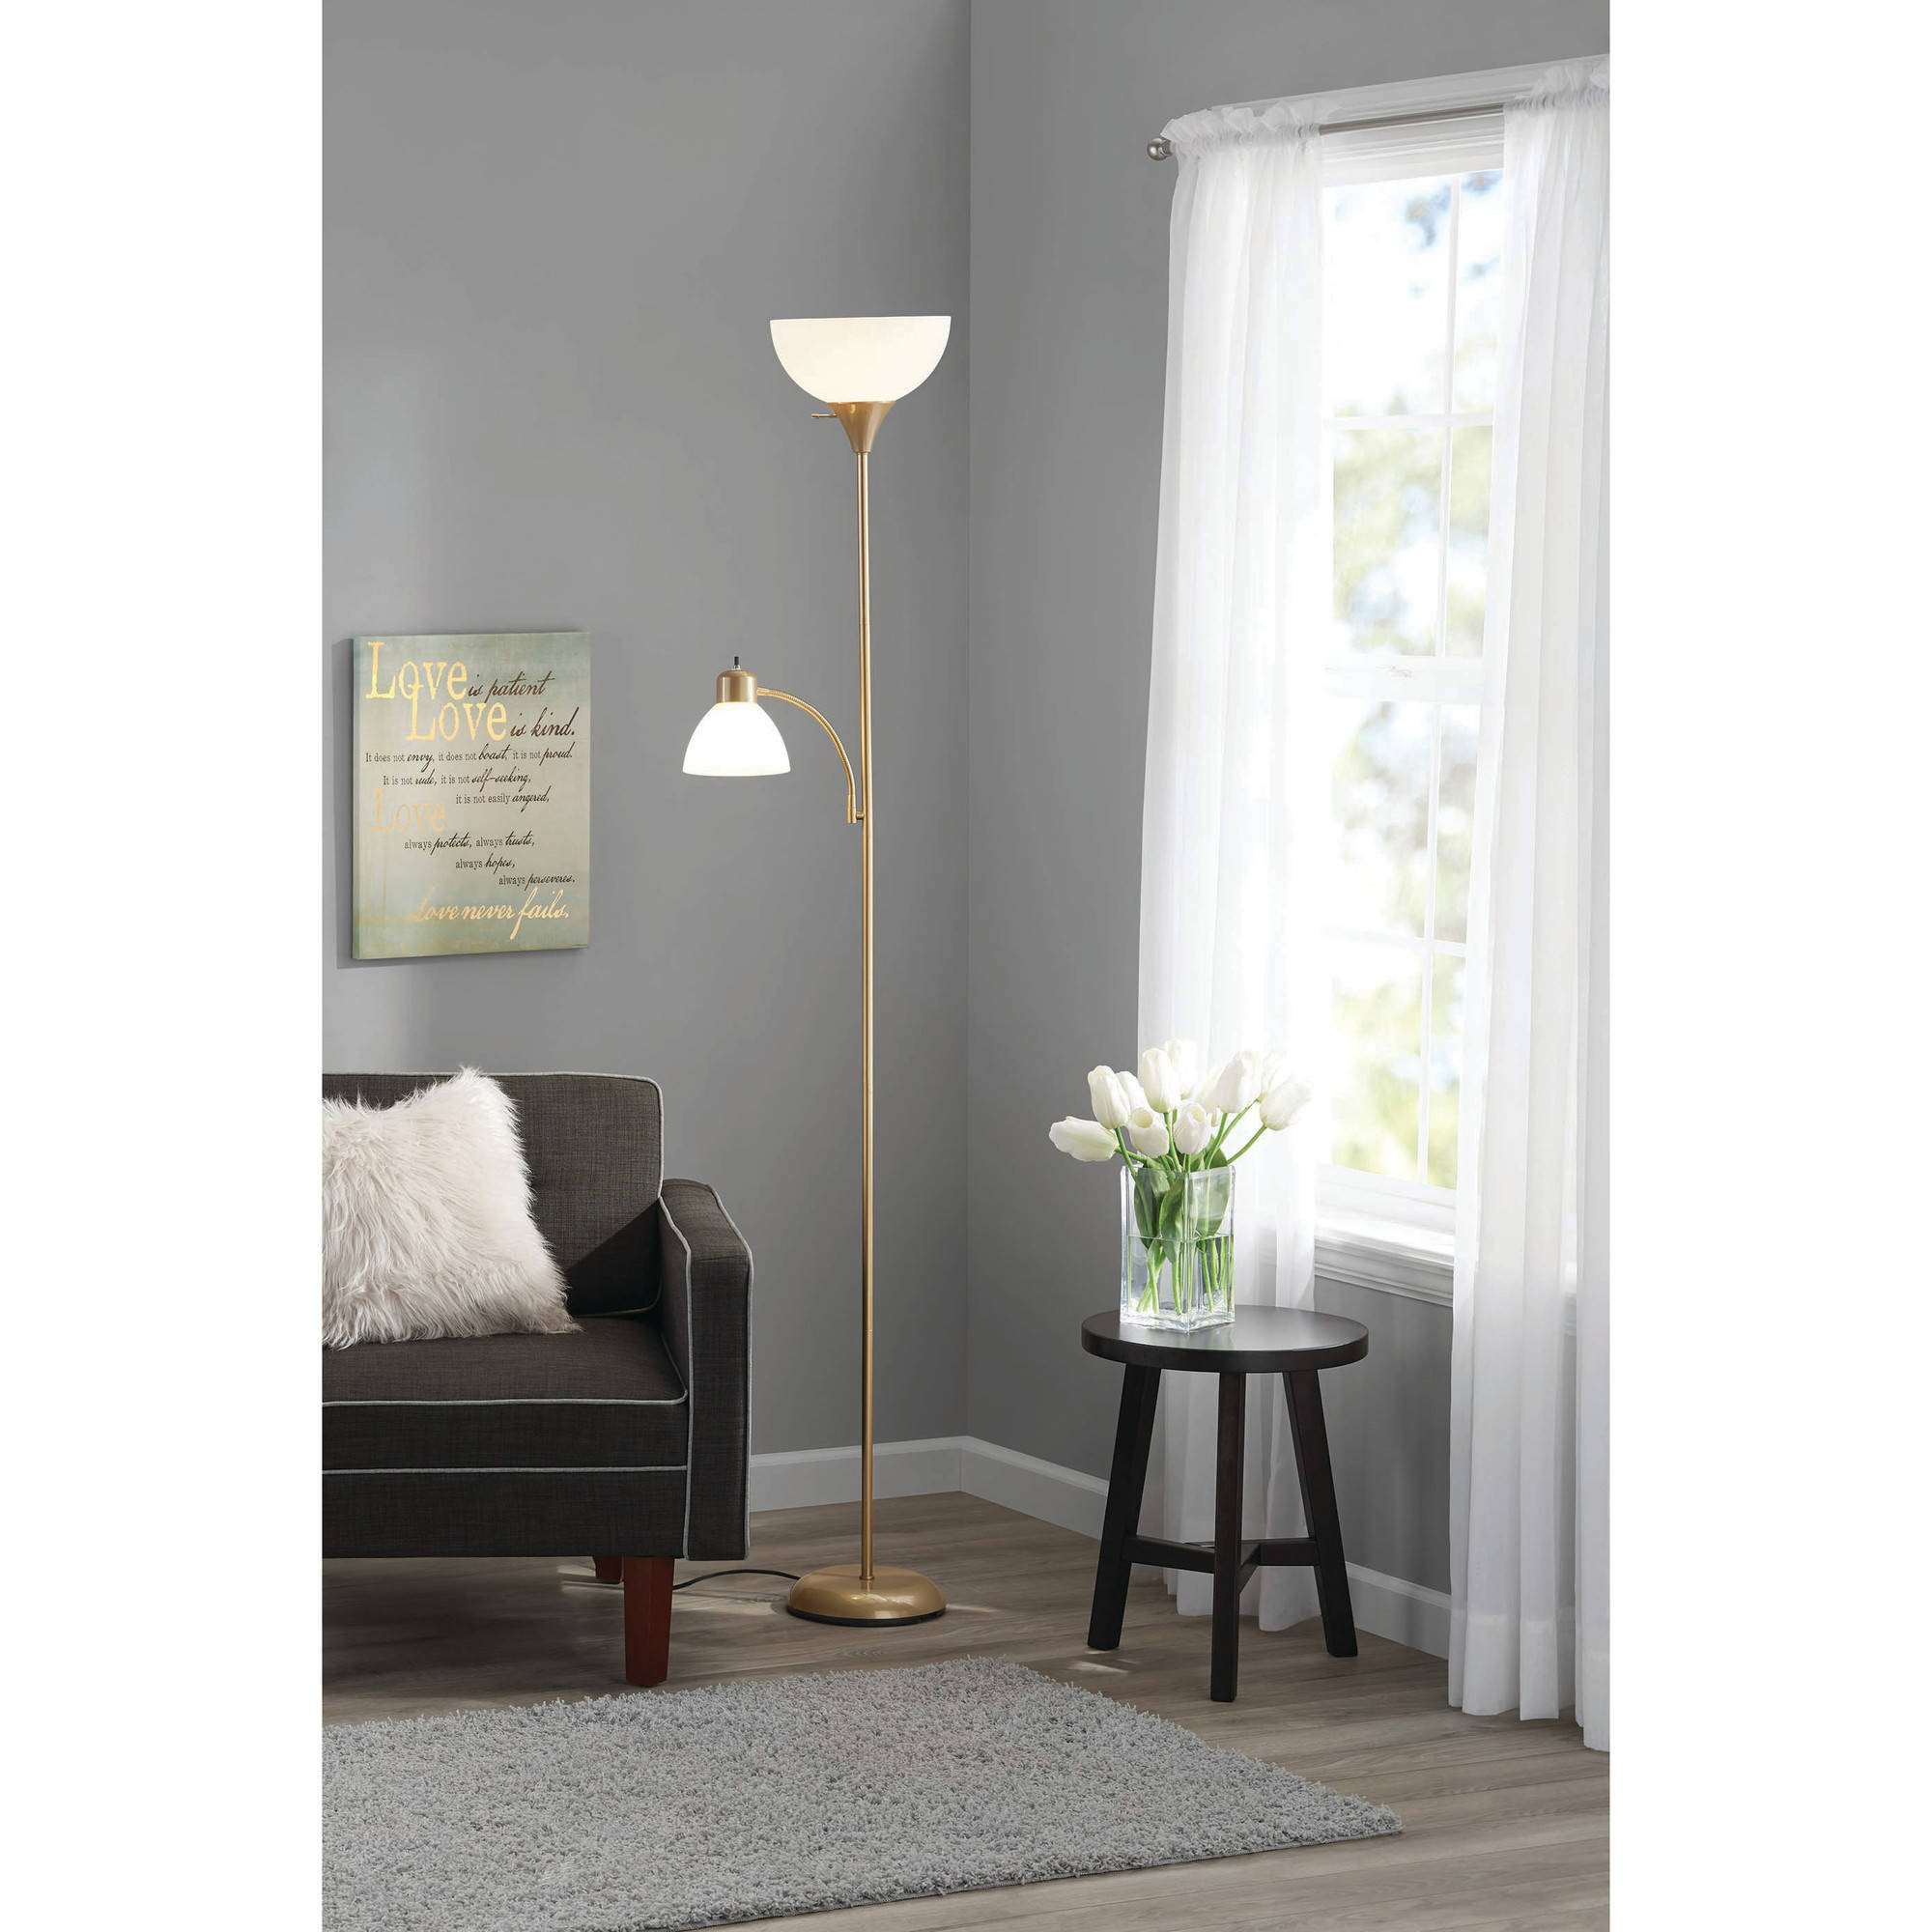 Mainstays Large 72 Combo Floor Lamp With Adjustable Reading Lamp Gold Finish Walmart Com